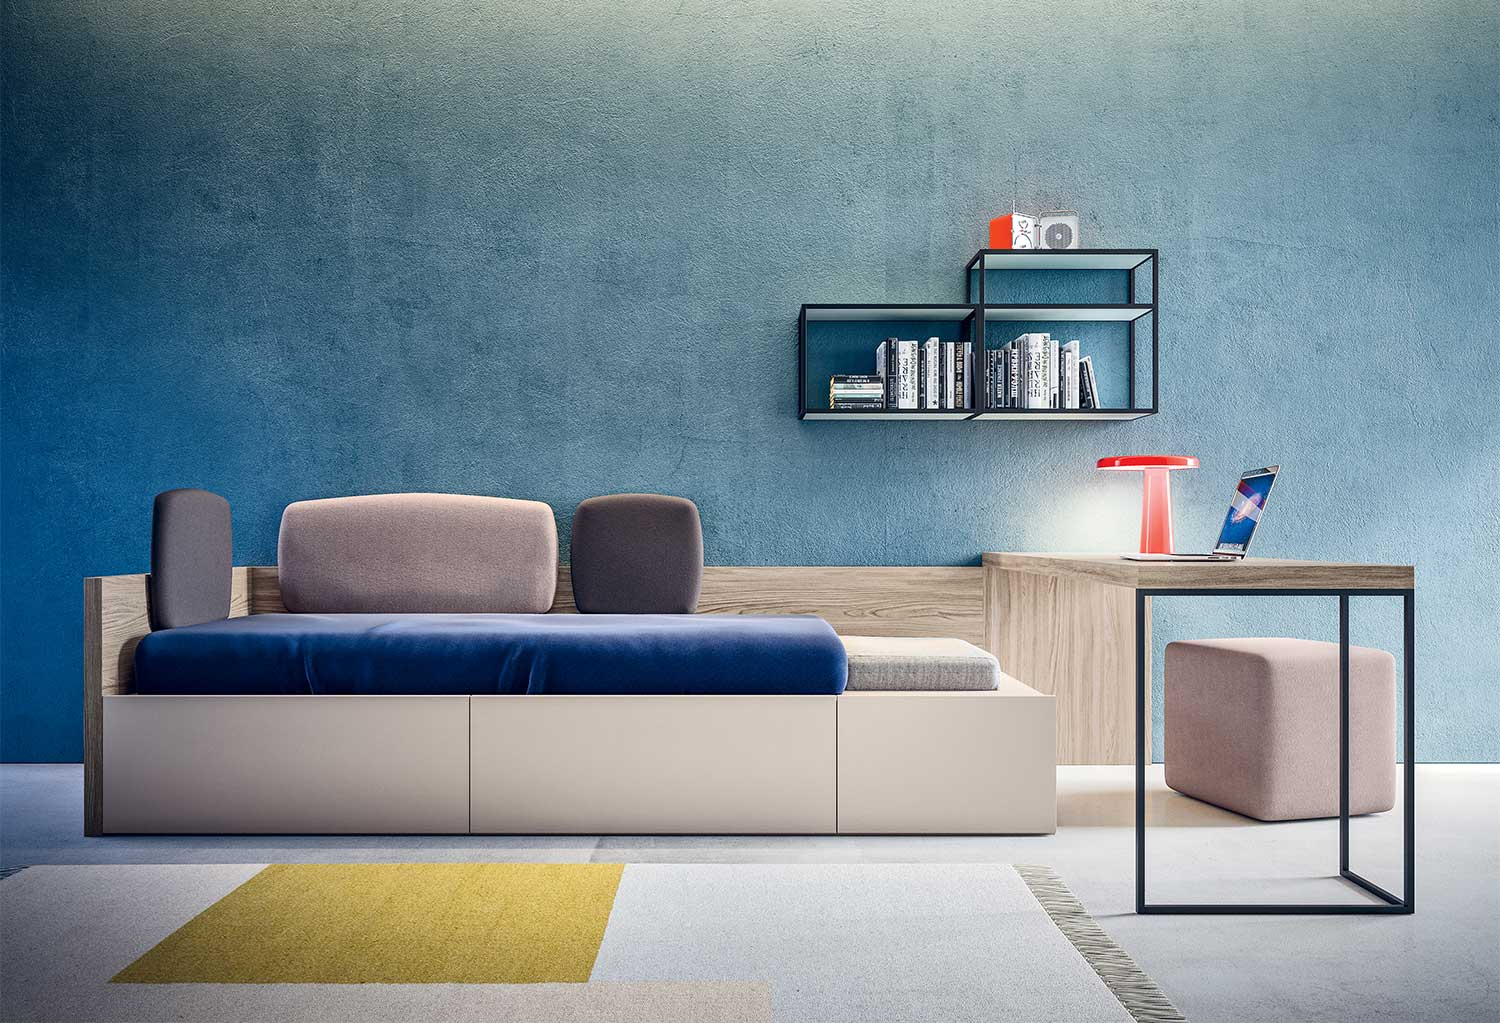 XL bed is equipped with drawers, upholstered panels and side seating